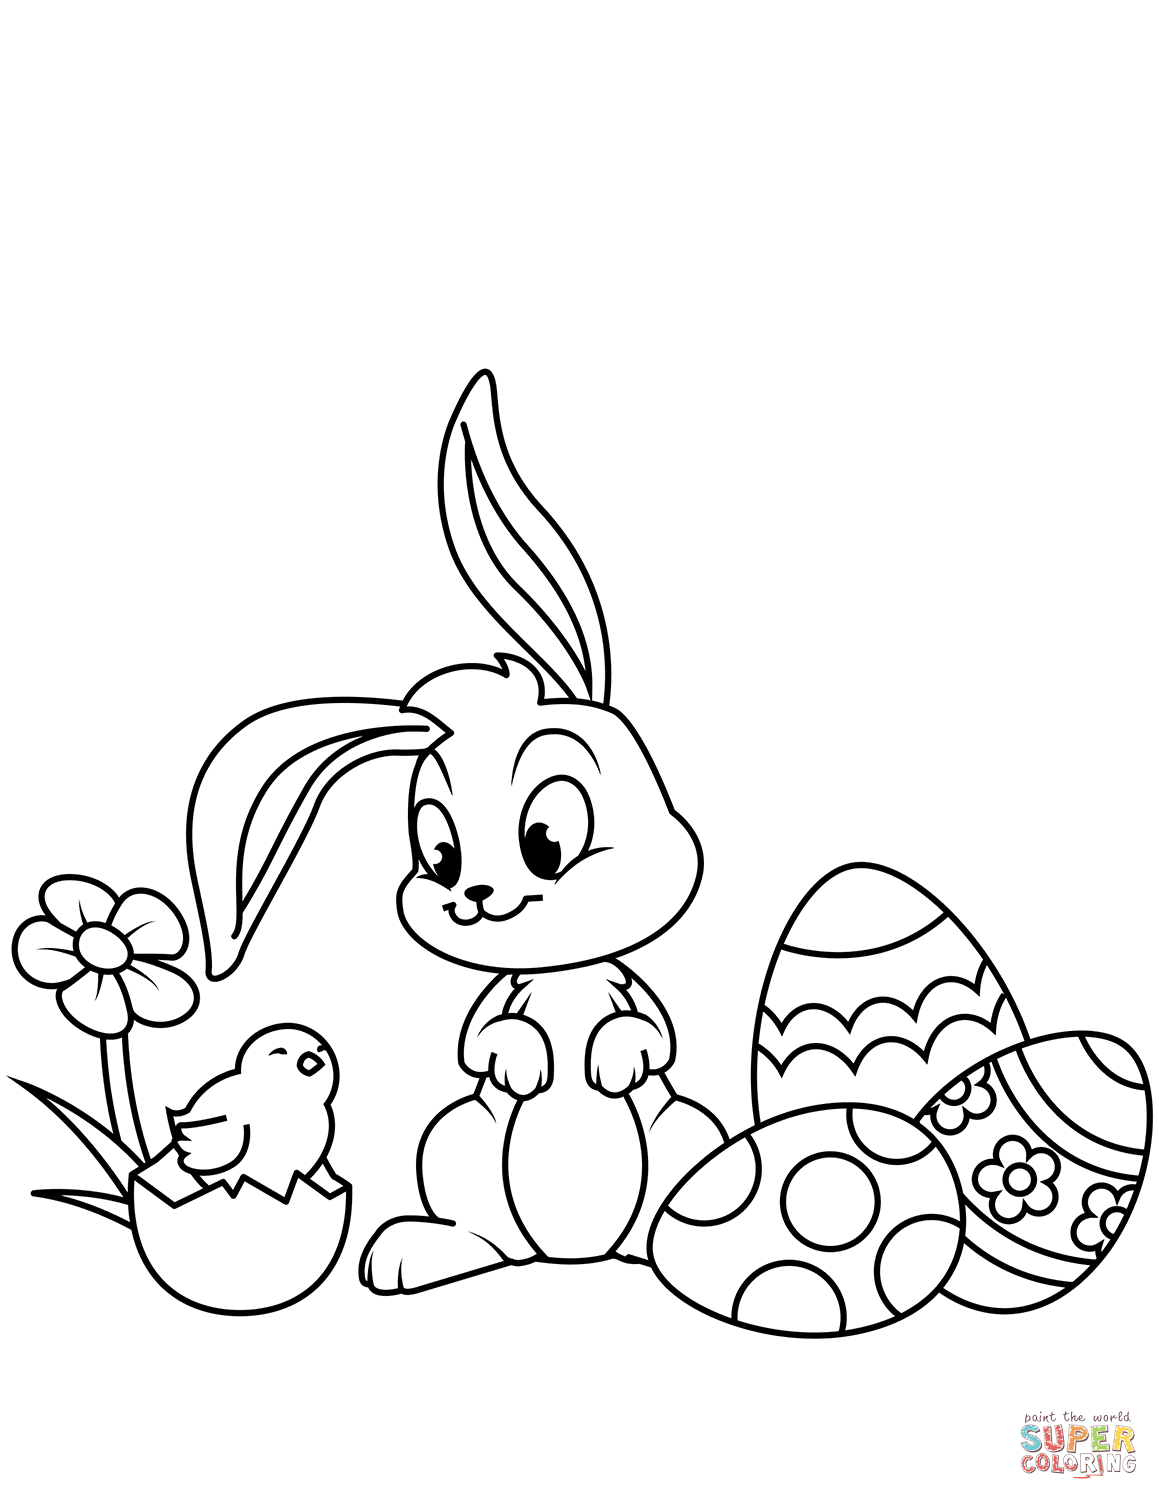 Cute Easter Chick Bunny And Eggs Coloring Page